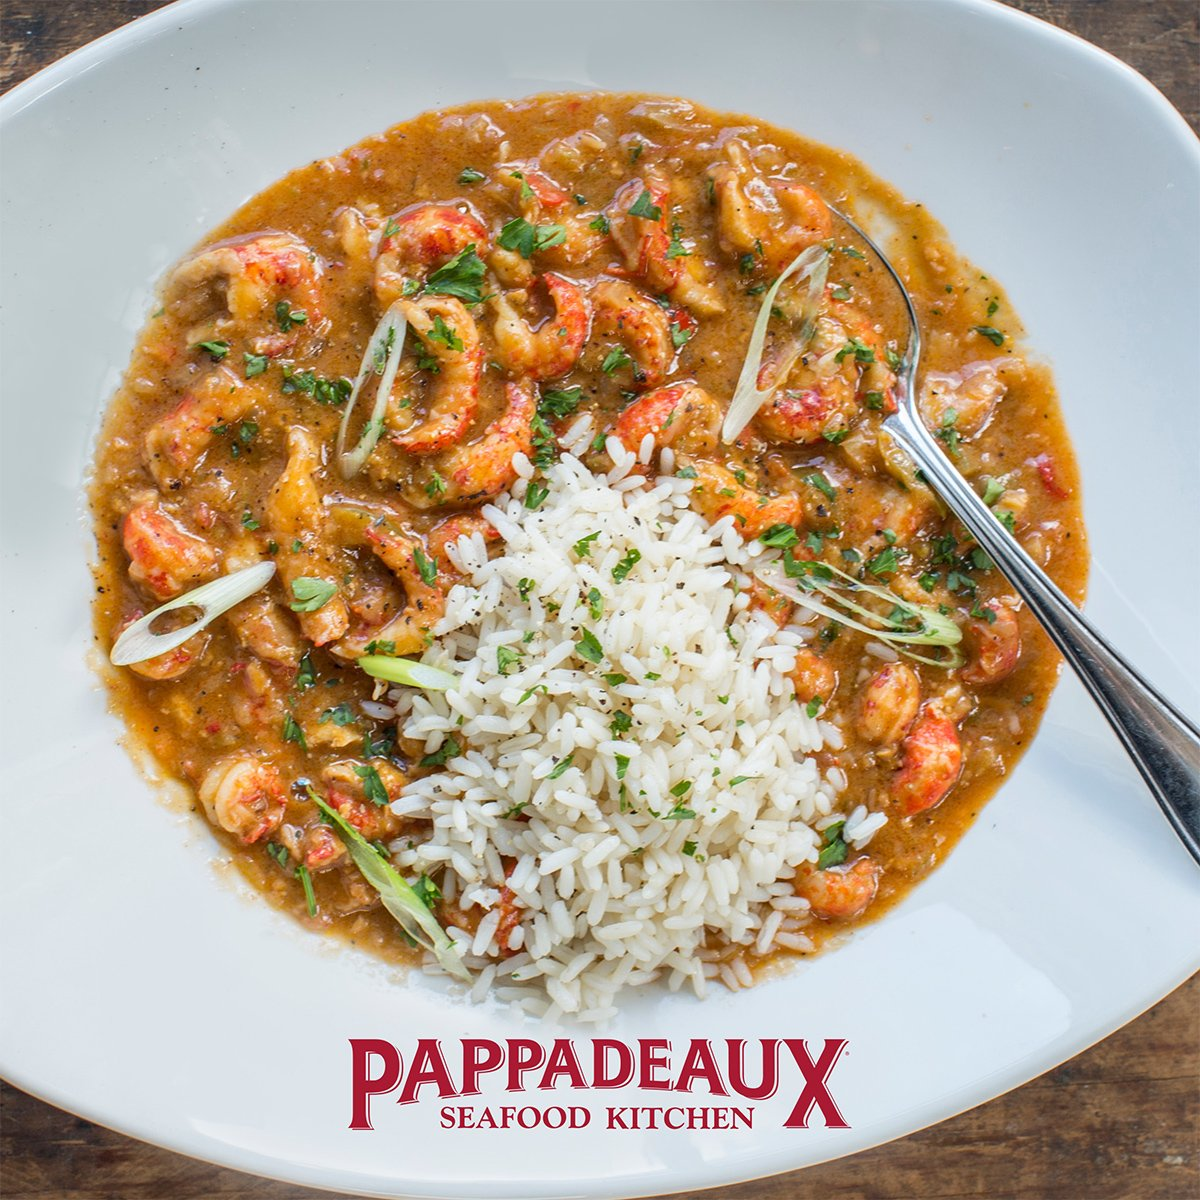 Our Crawfish Etouffee is a serious life changer! Order one today and see for yourself! https://t.co/iJUQjrECRM